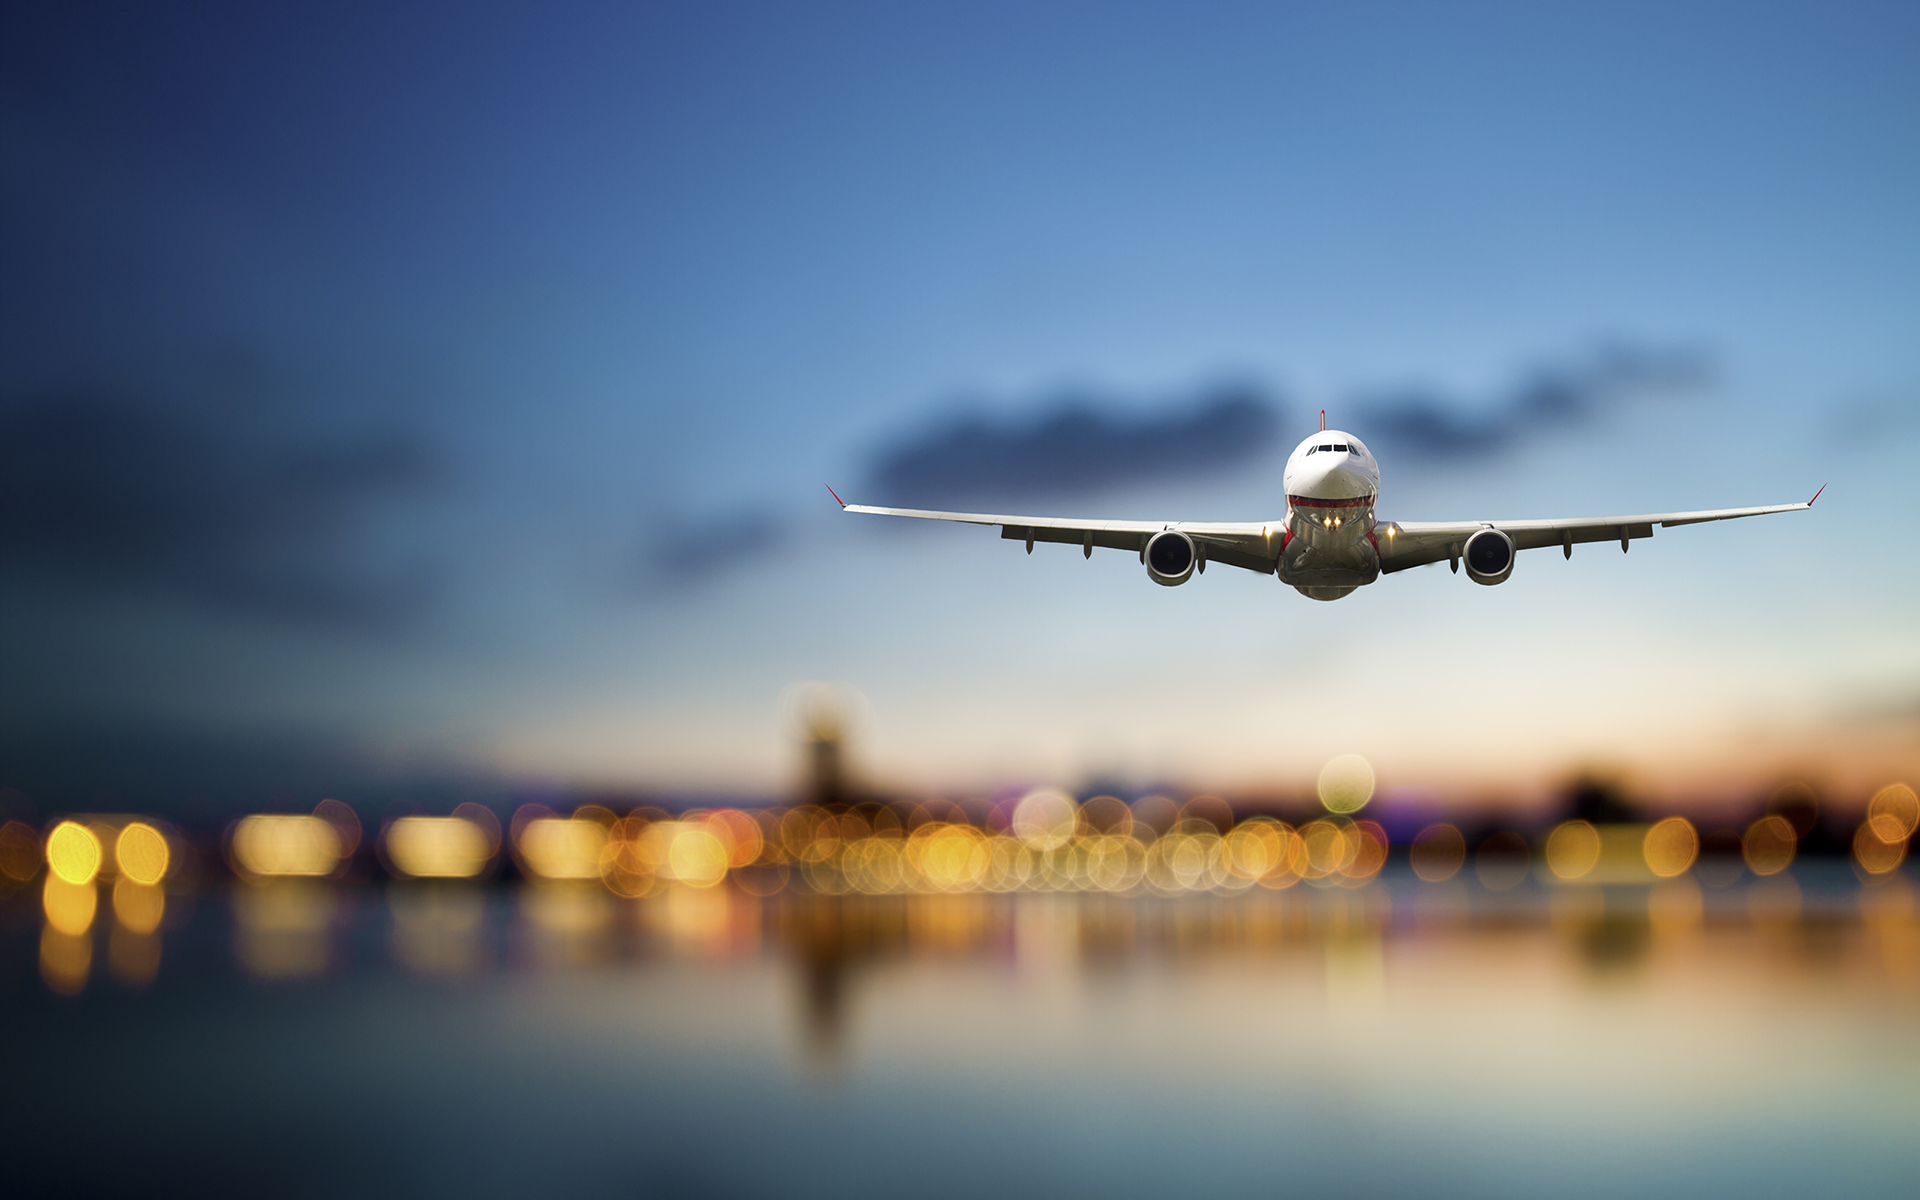 General 1920x1200 airplane passenger aircraft aircraft depth of field bokeh runway blurred sky reflection lights sunset